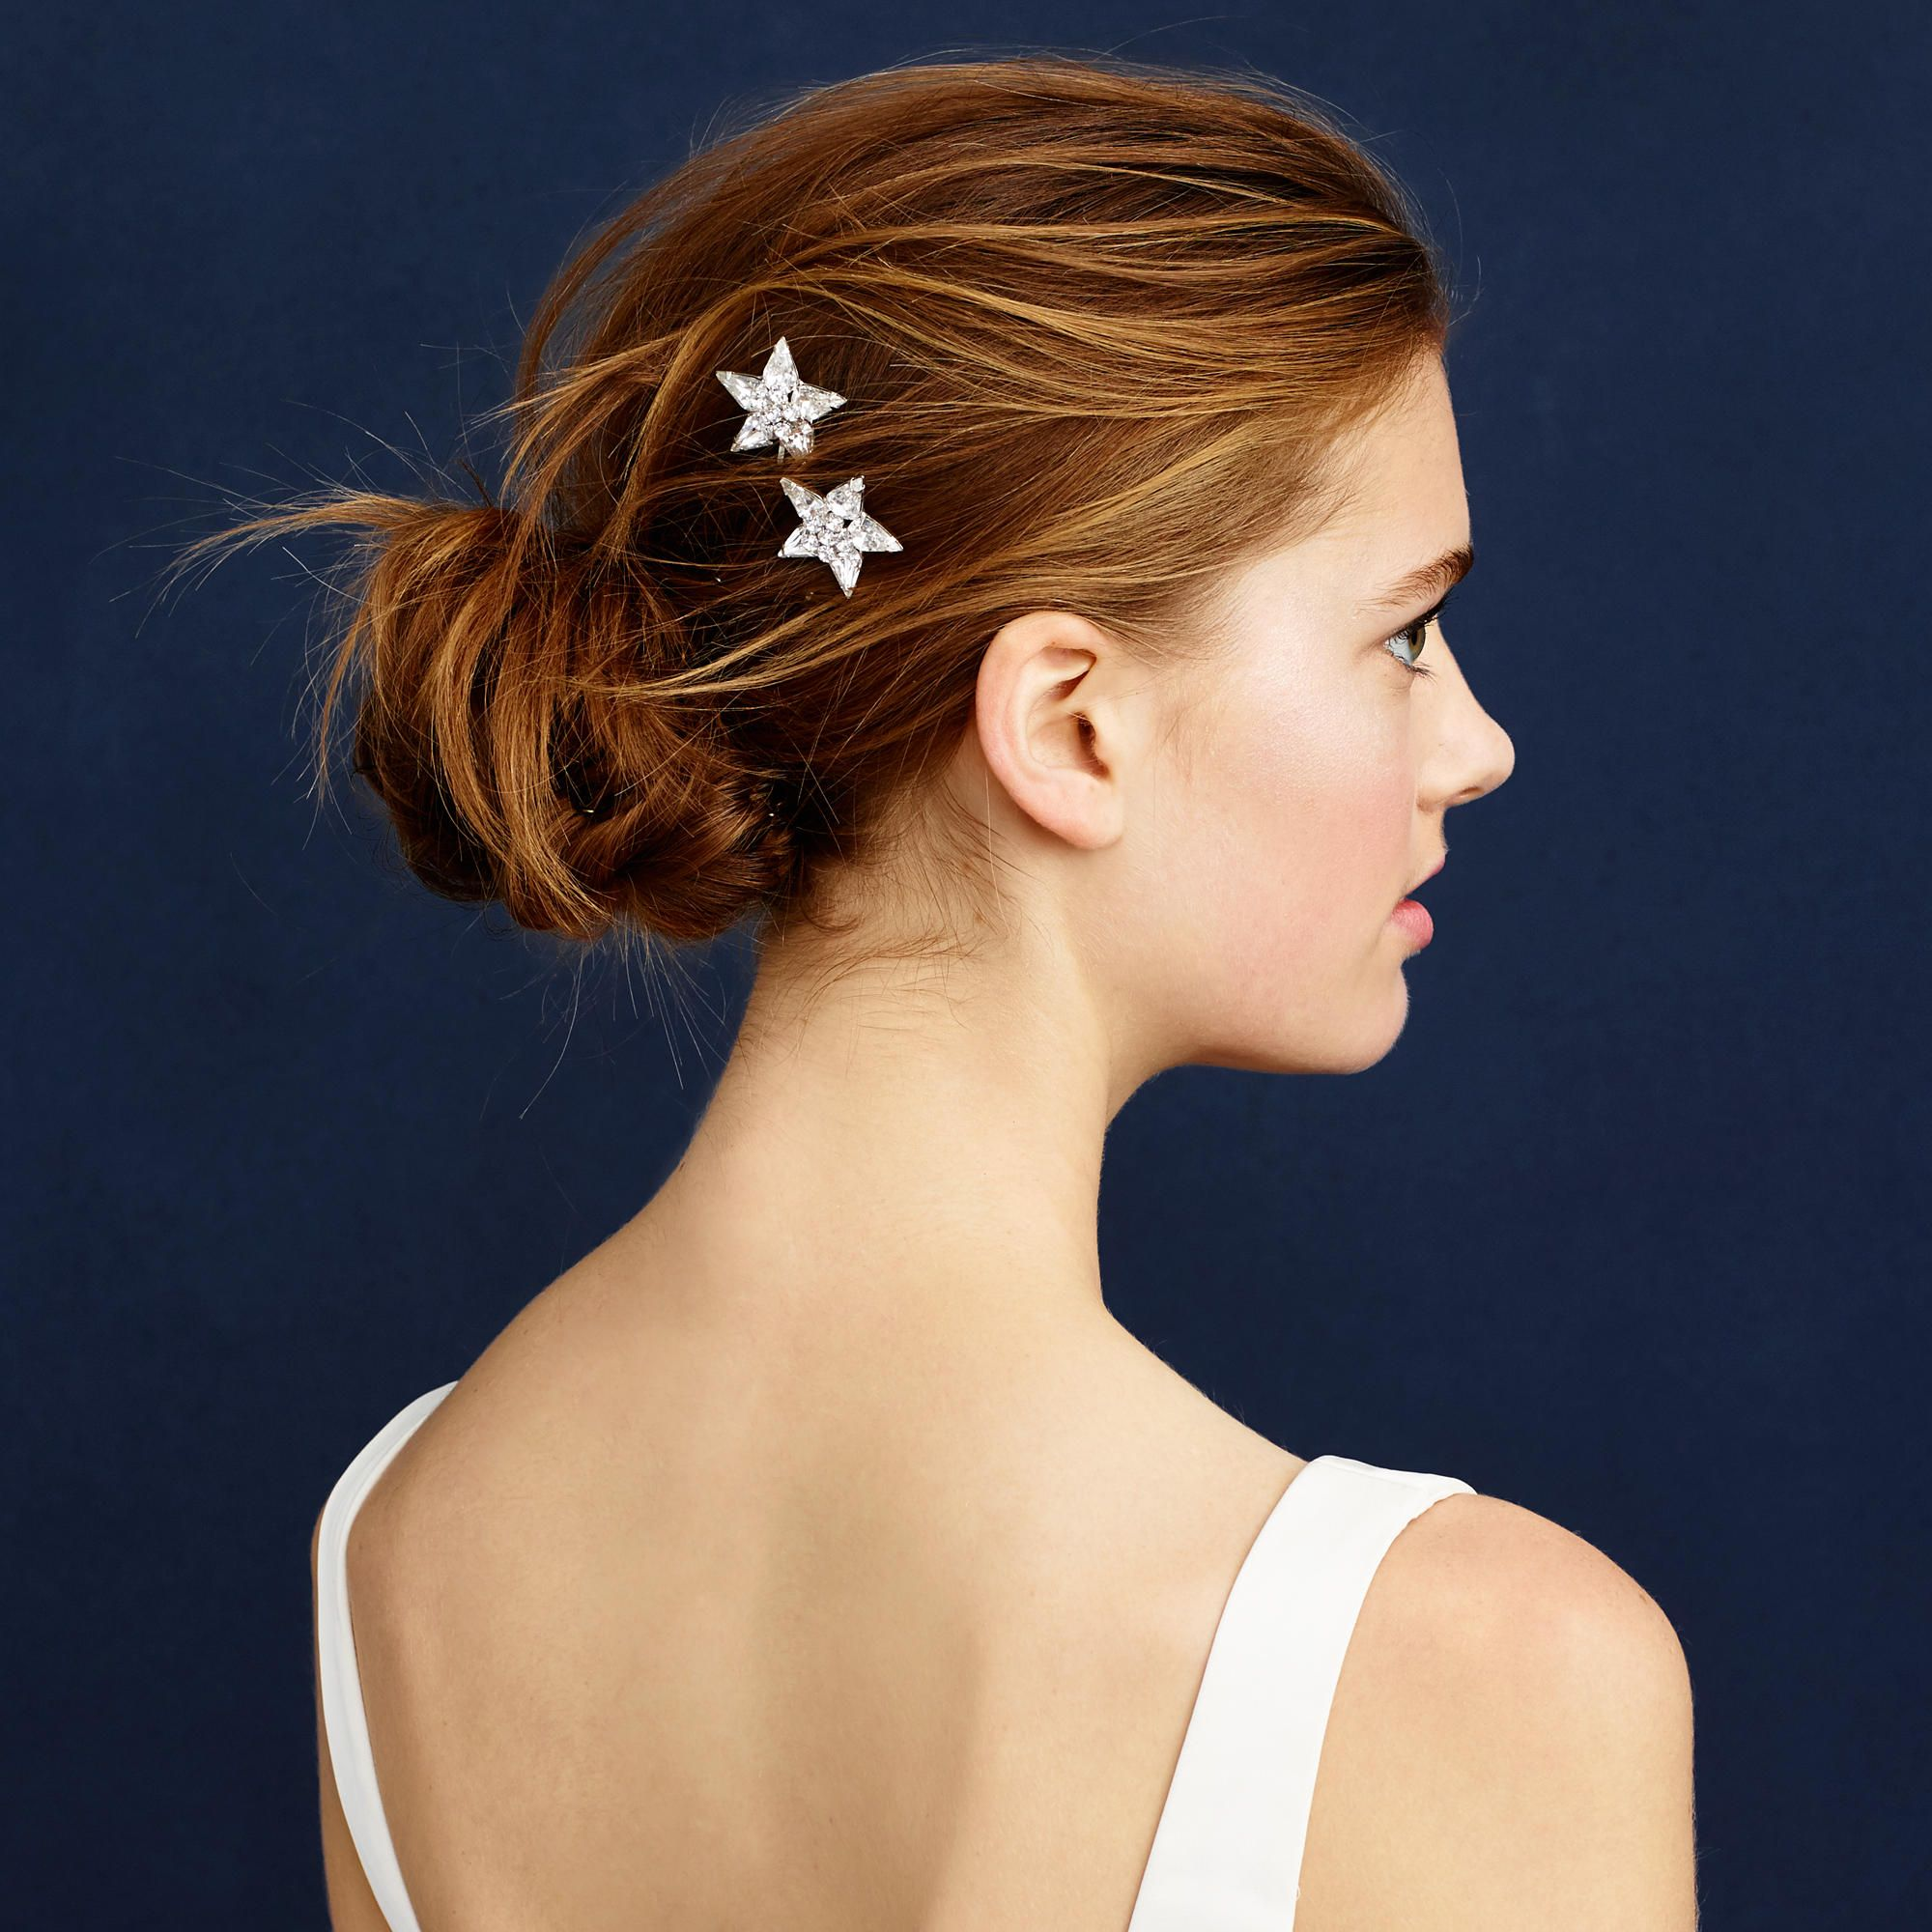 pin by madame.doise on party ❥ hair   pinterest   party hair